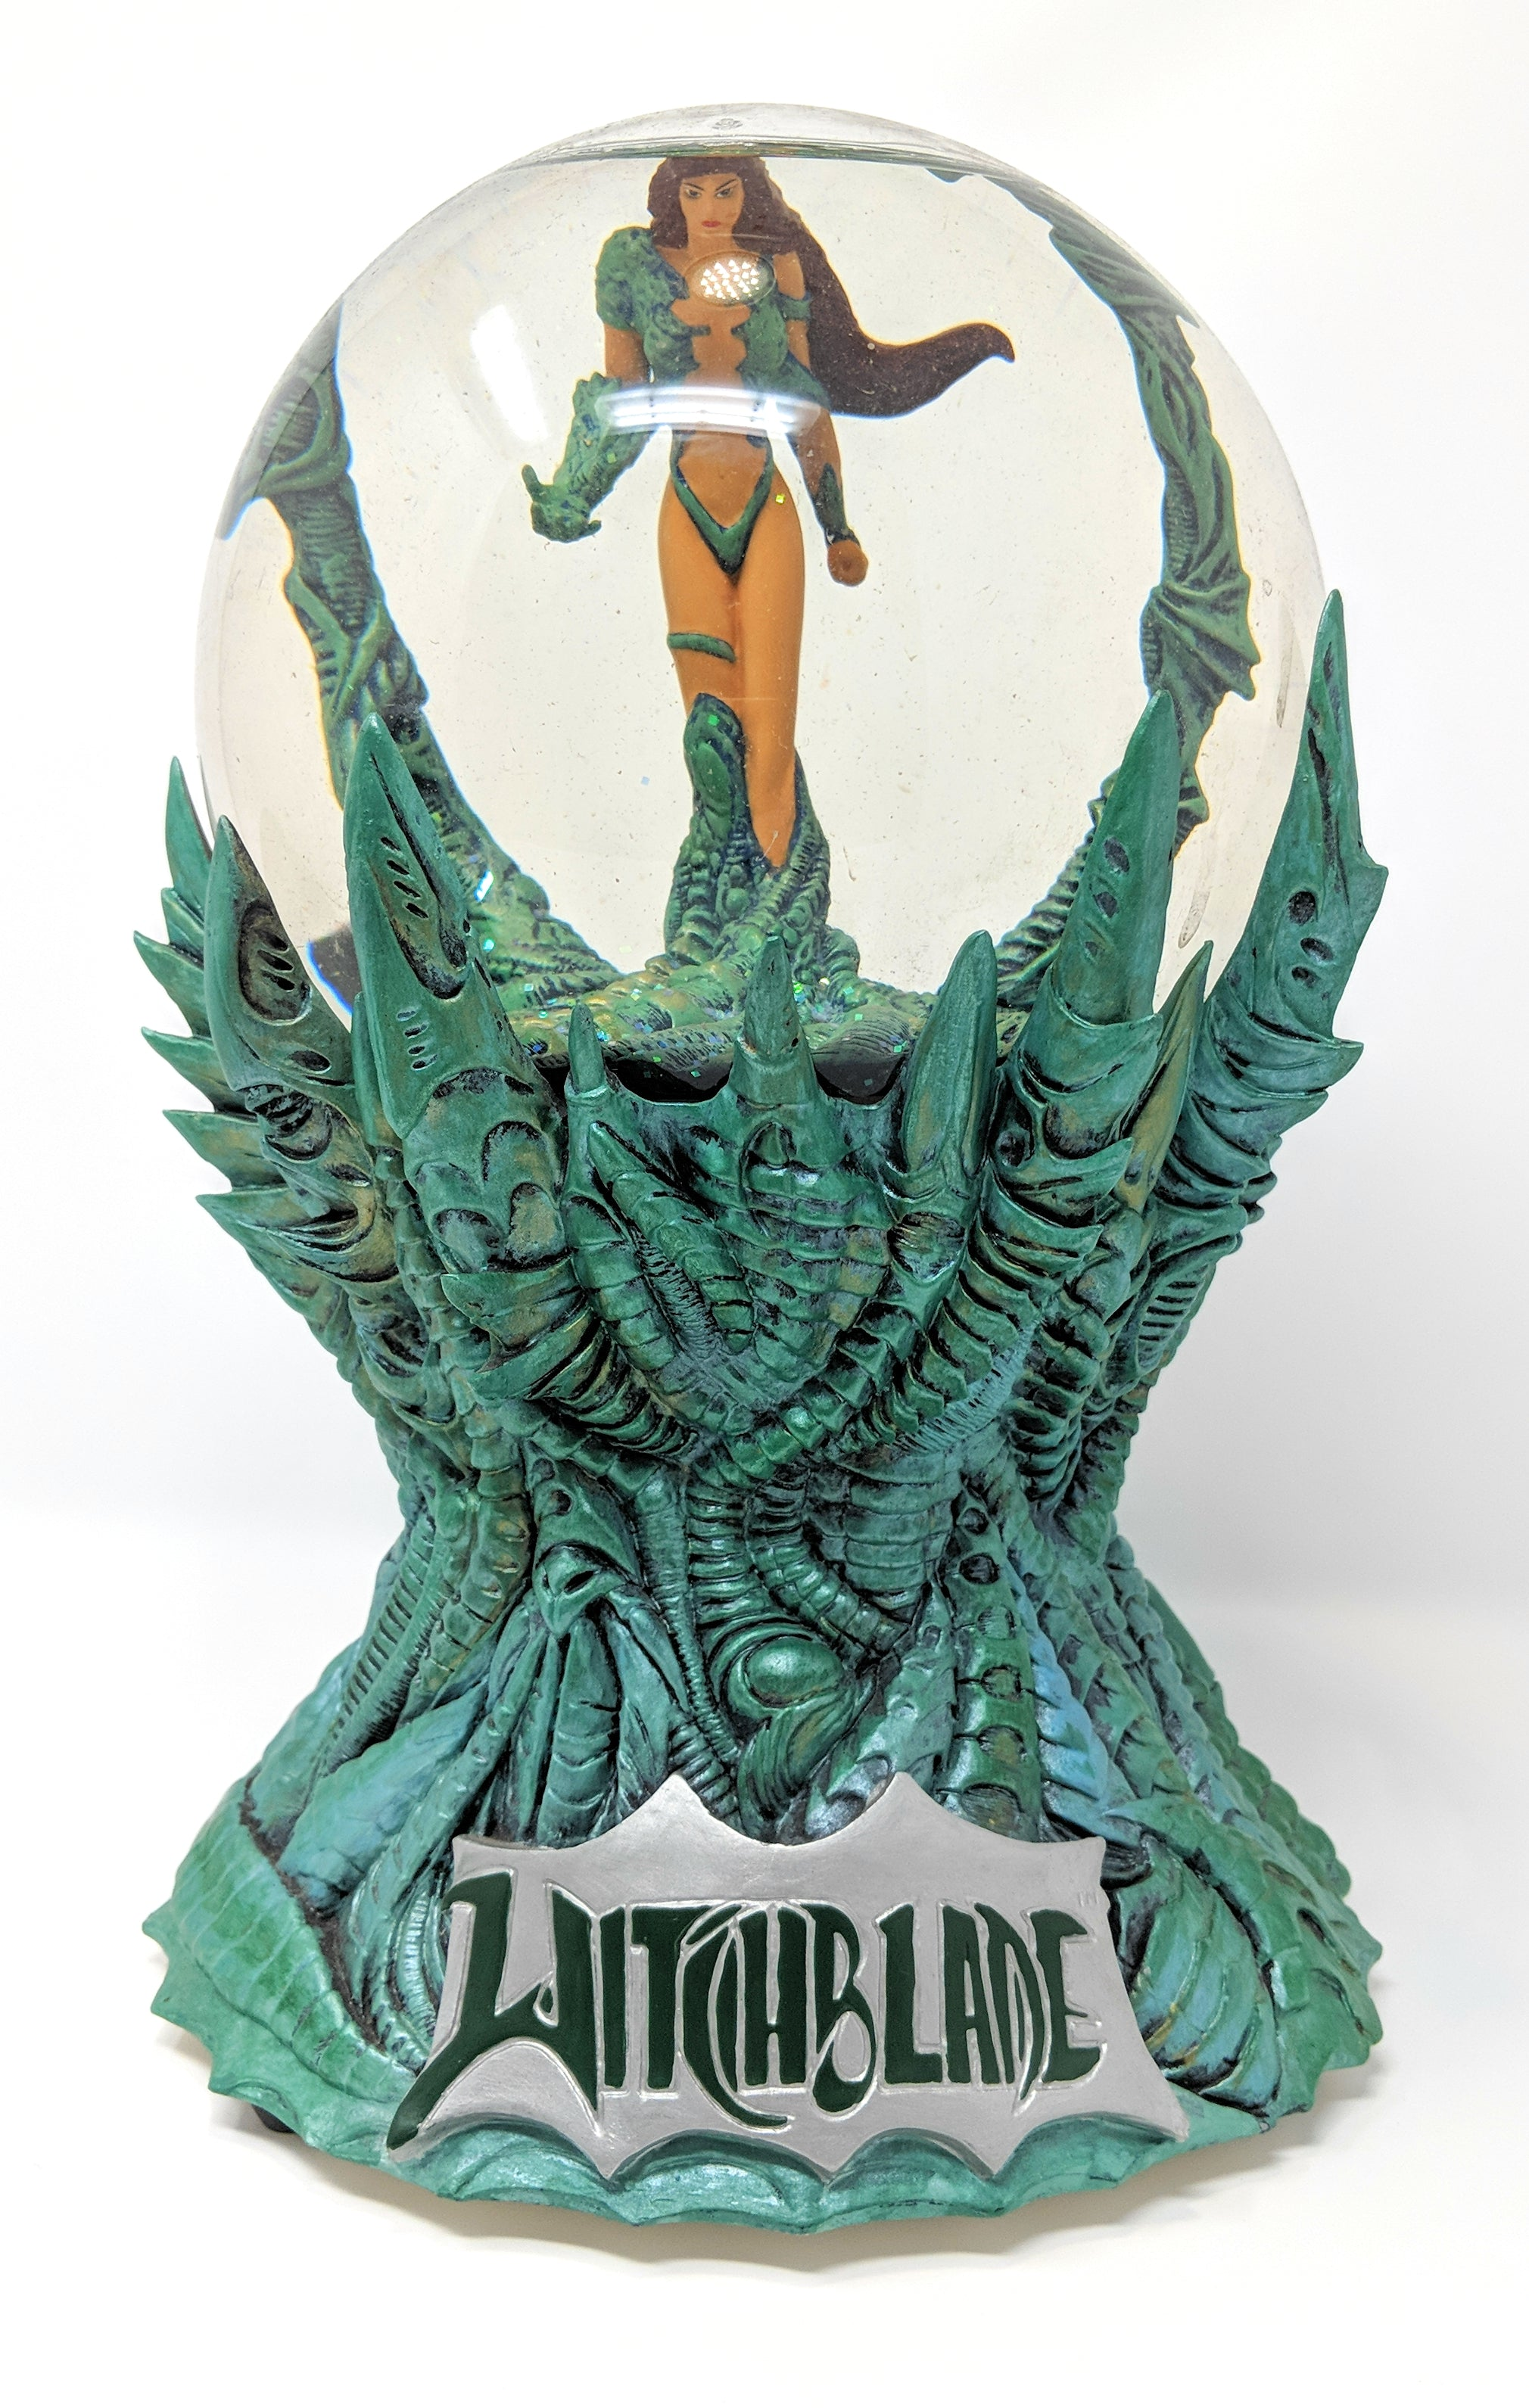 The Witchblade Snowglobe by Moore Creations, Inc. (1999) | Limited Edition #485 of 3000